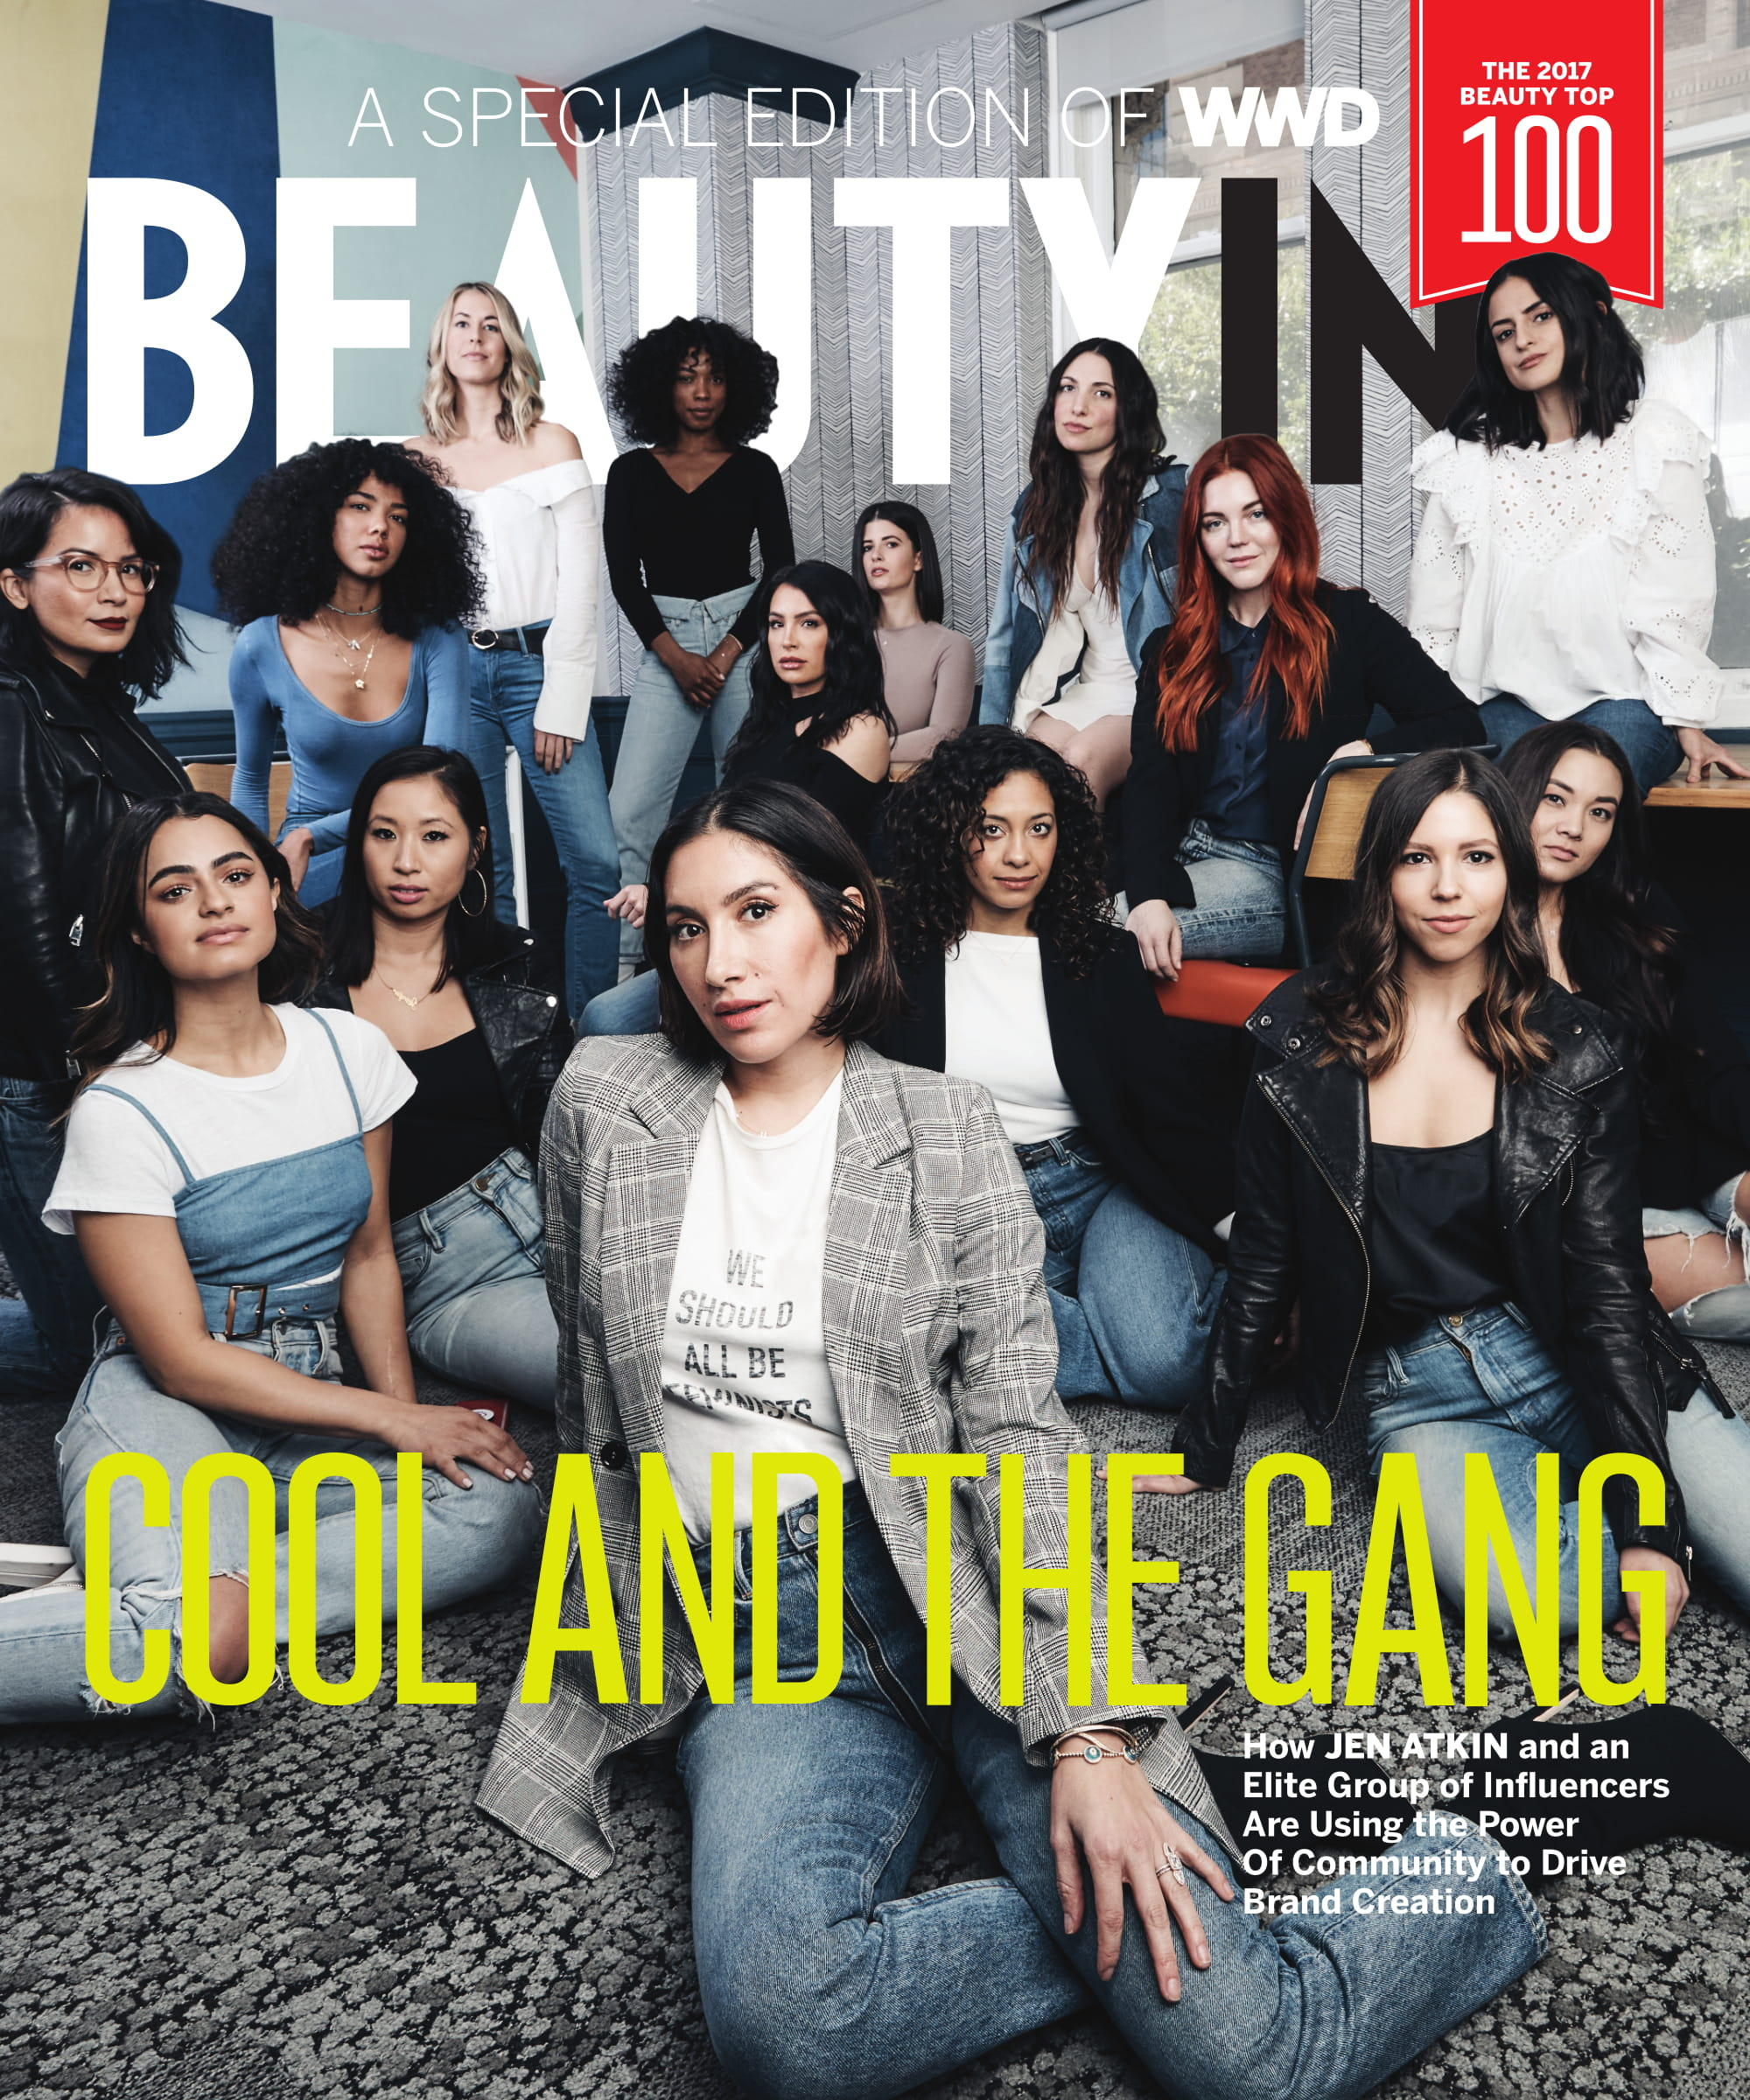 BEAUTYINC APRIL COVER-1.jpg